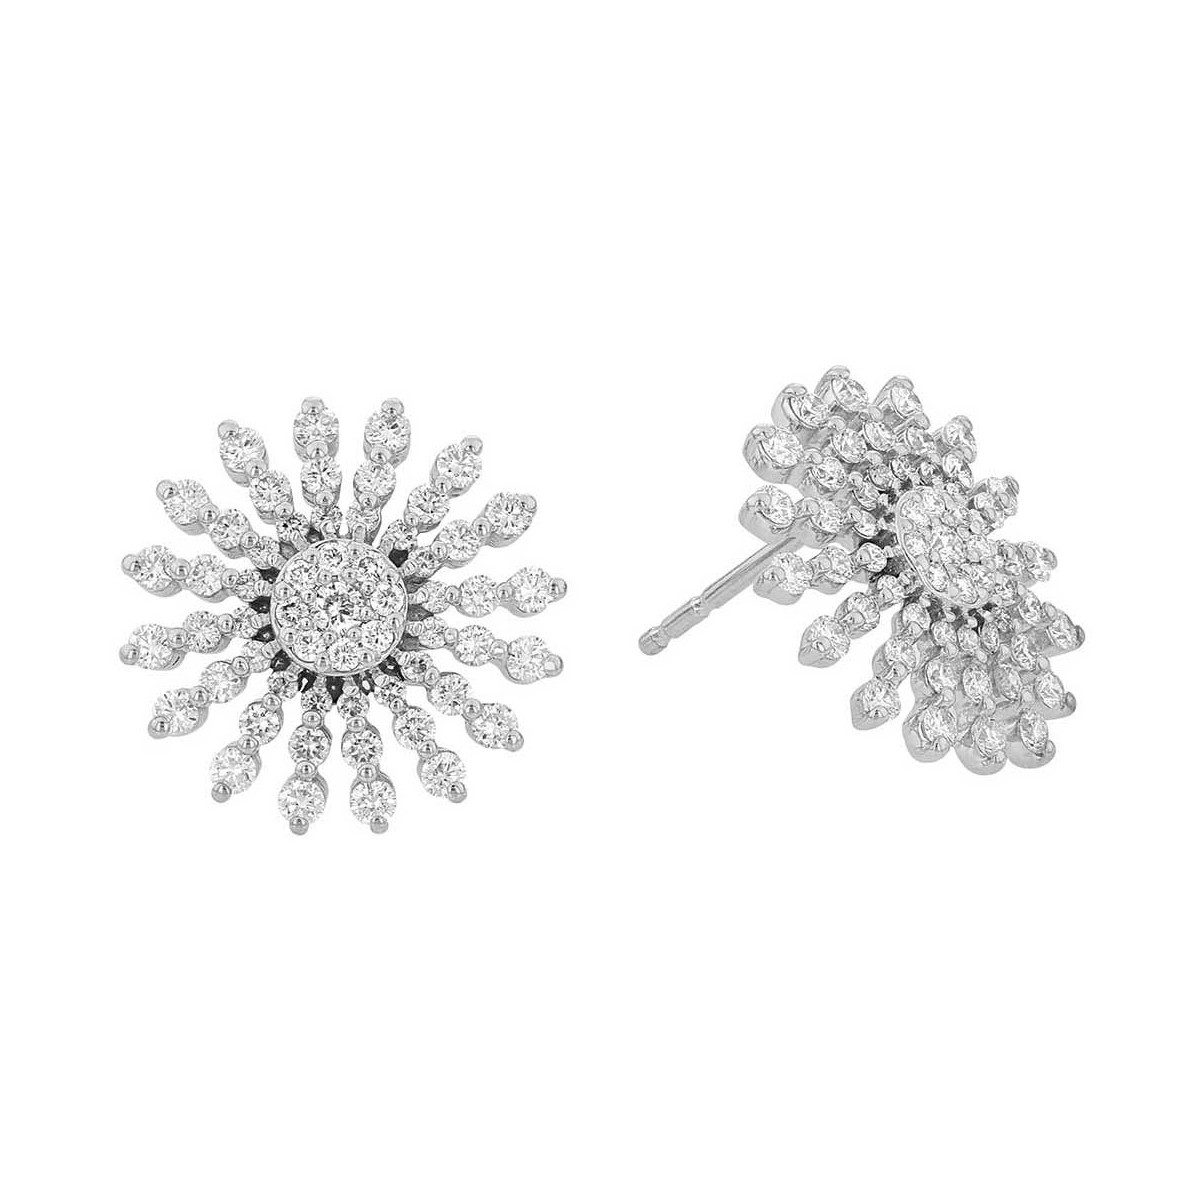 18k White Gold & Diamond Sunburst Stud Earrings